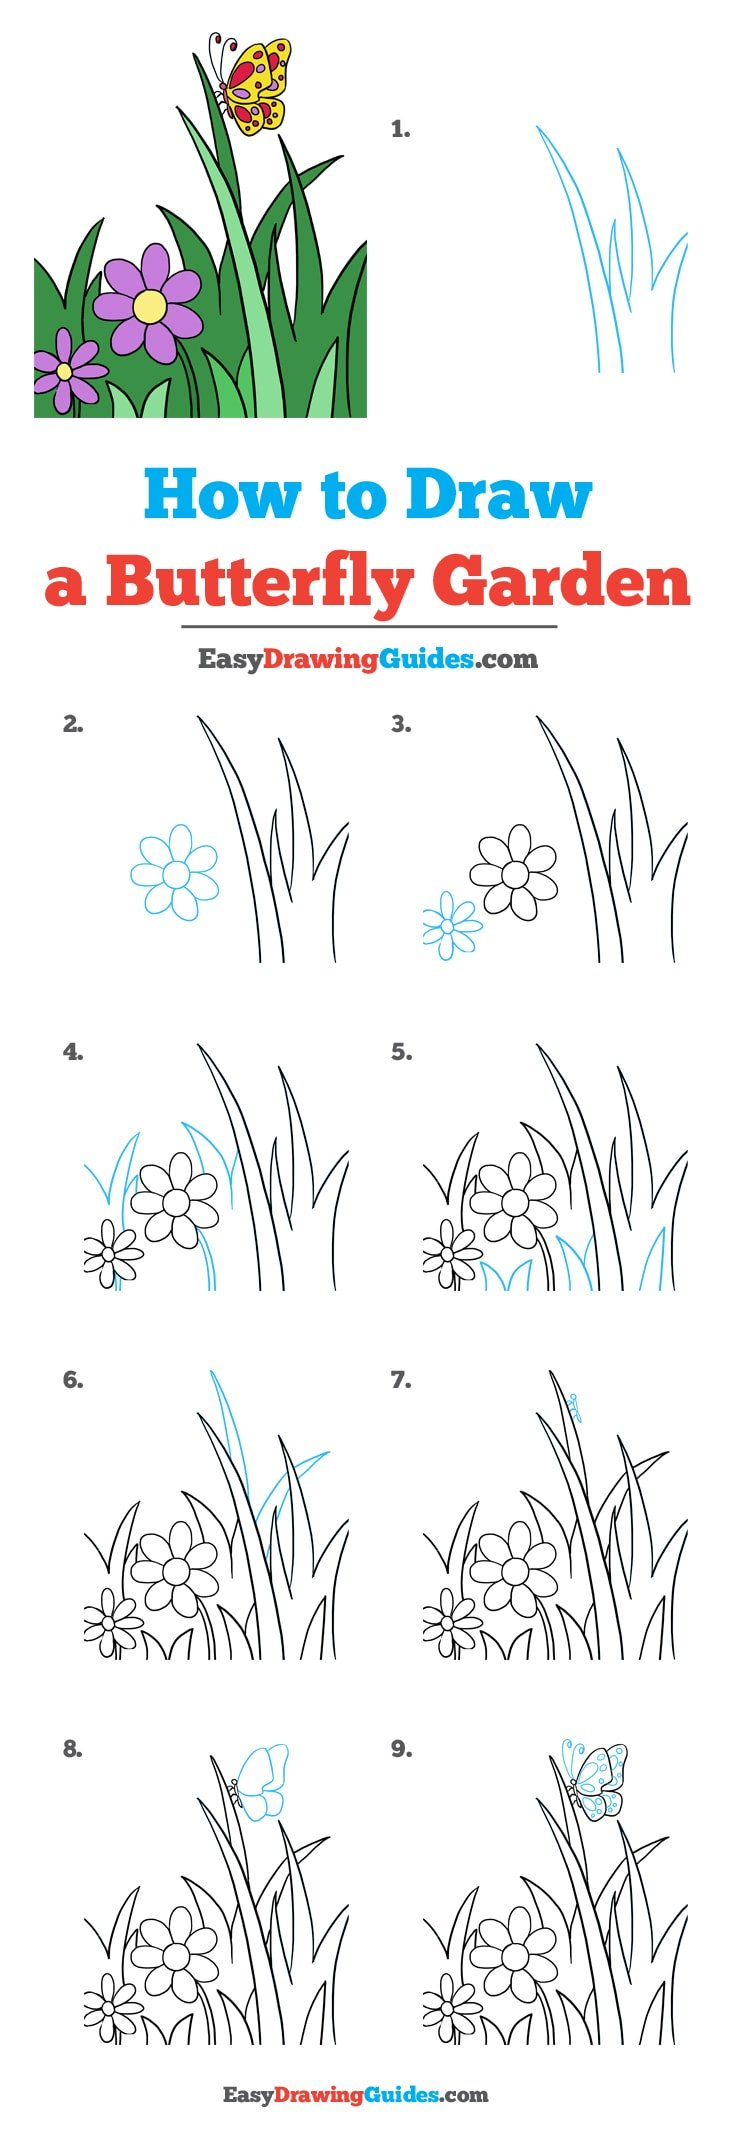 How to Draw a Butterfly Garden: Step by Step Tutorial